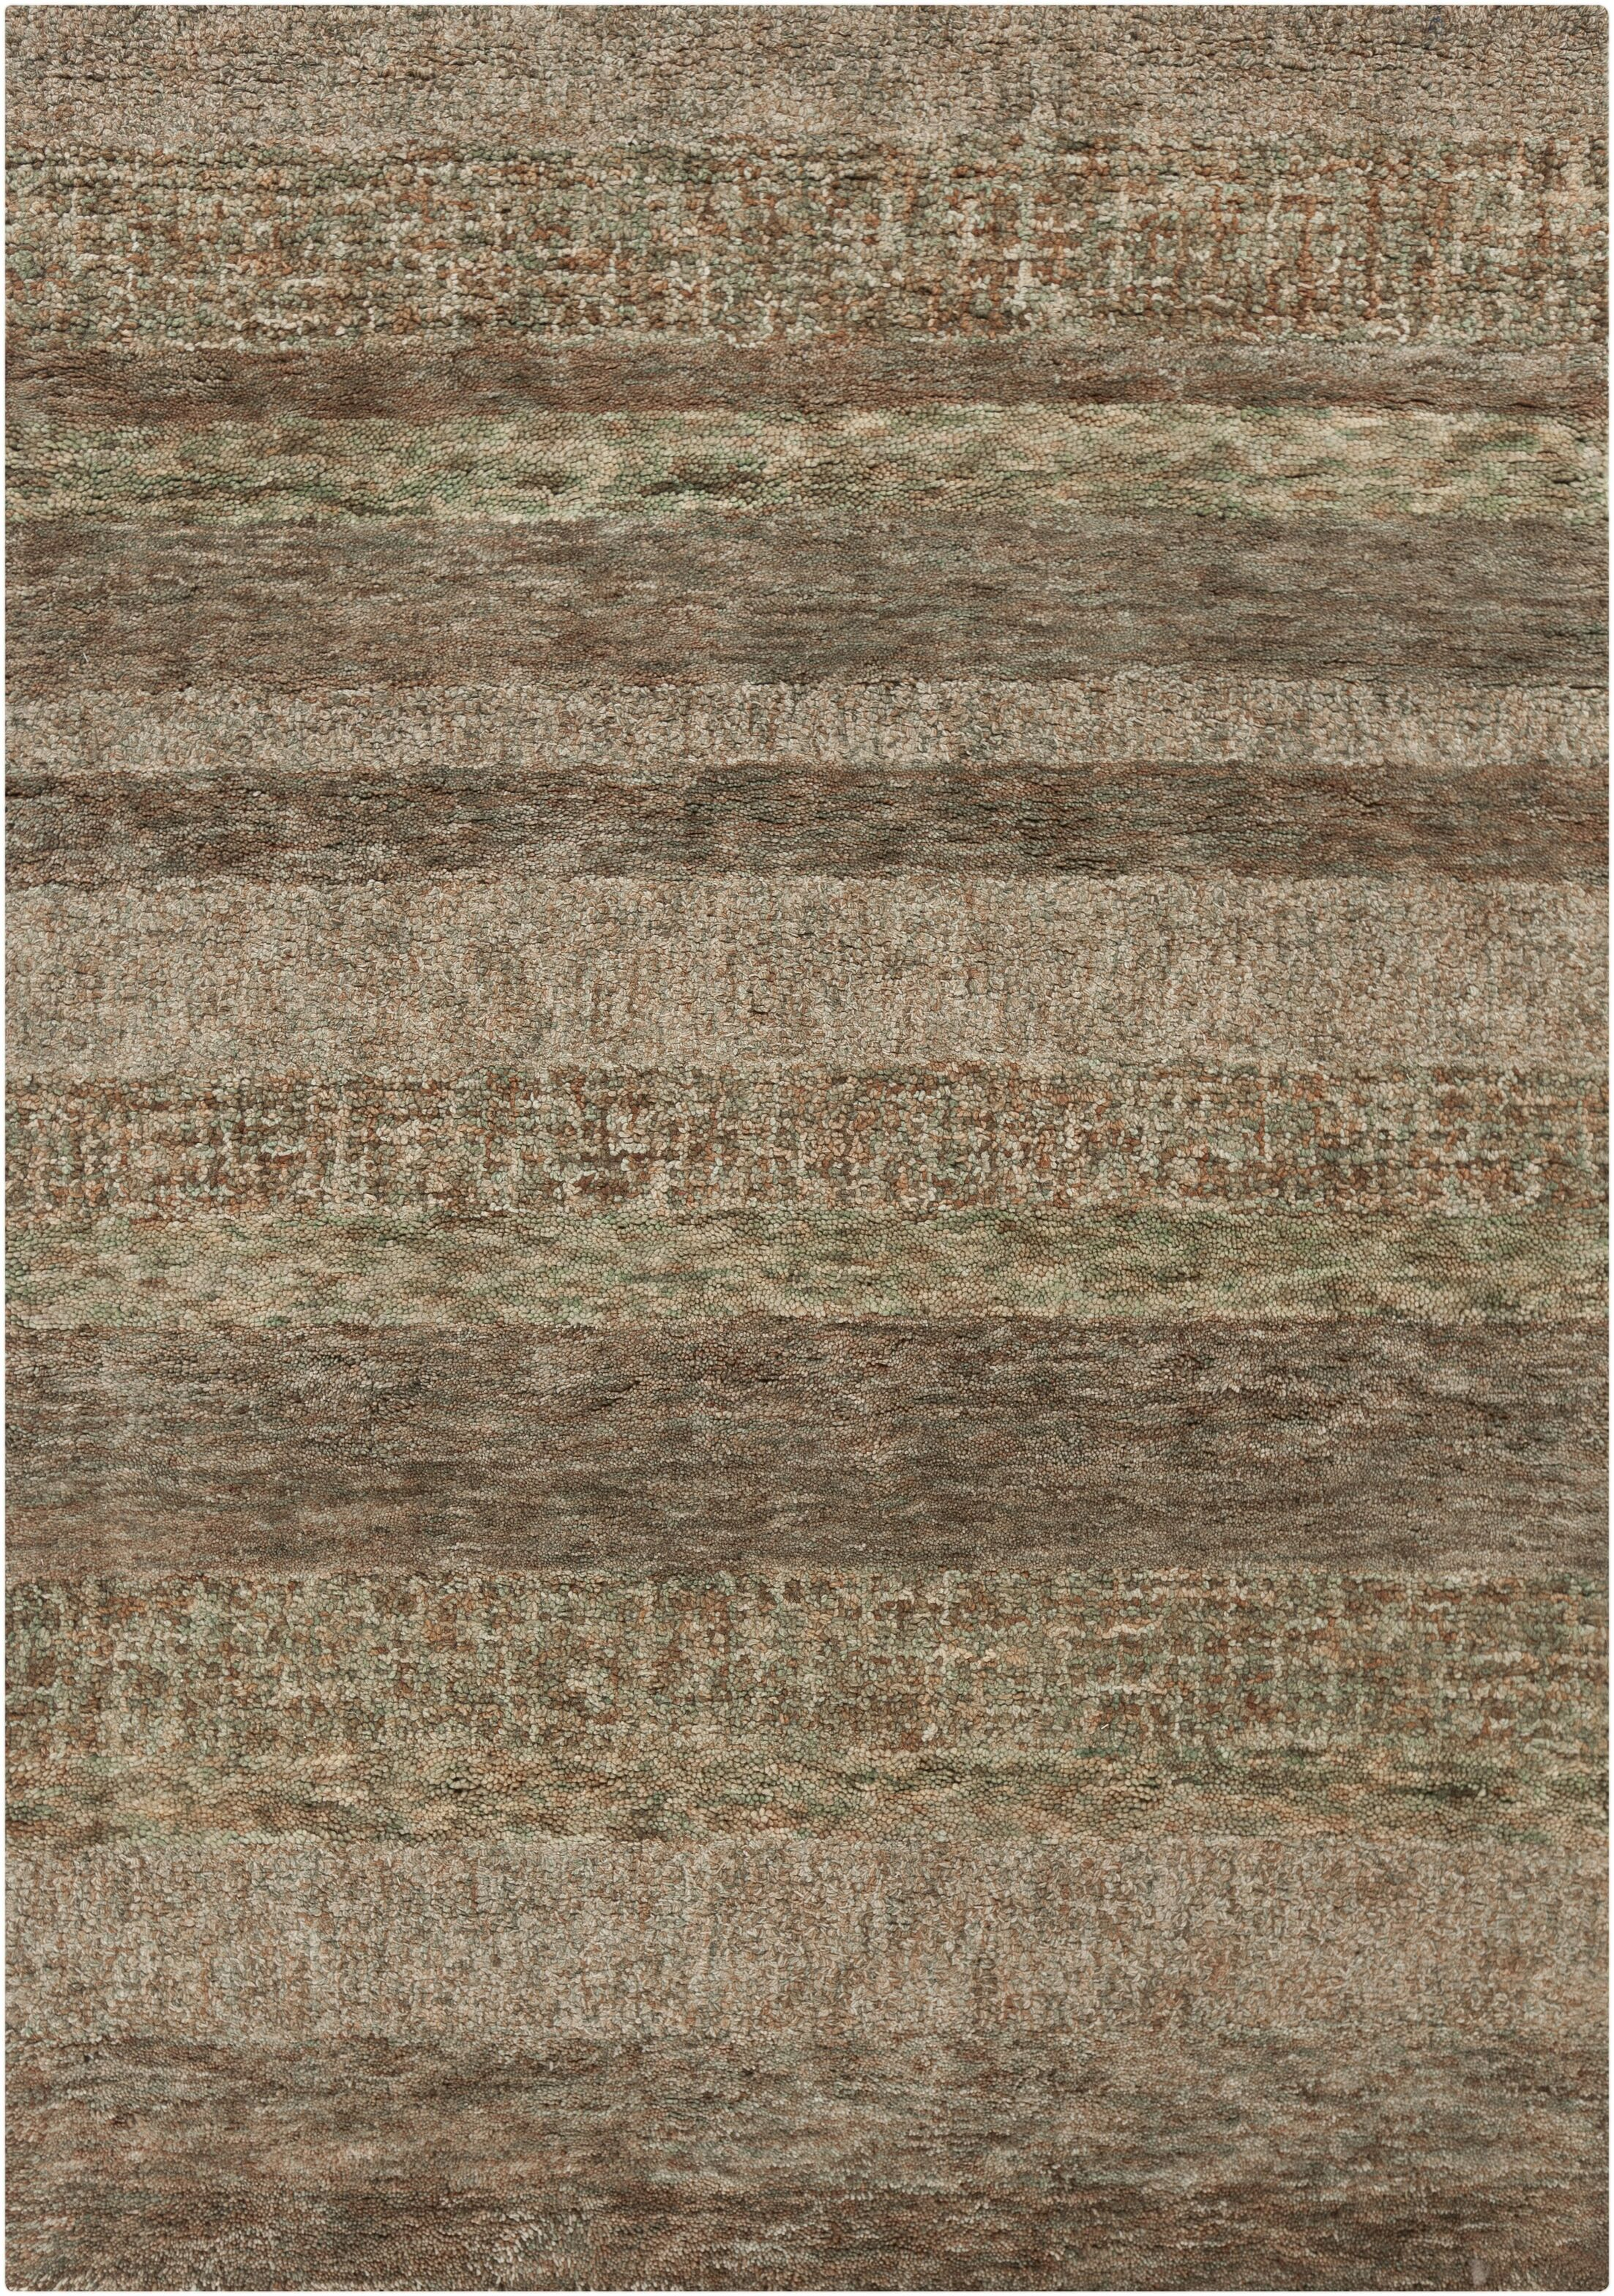 Carli Dark Brown Area Rug Rug Size: 7'9